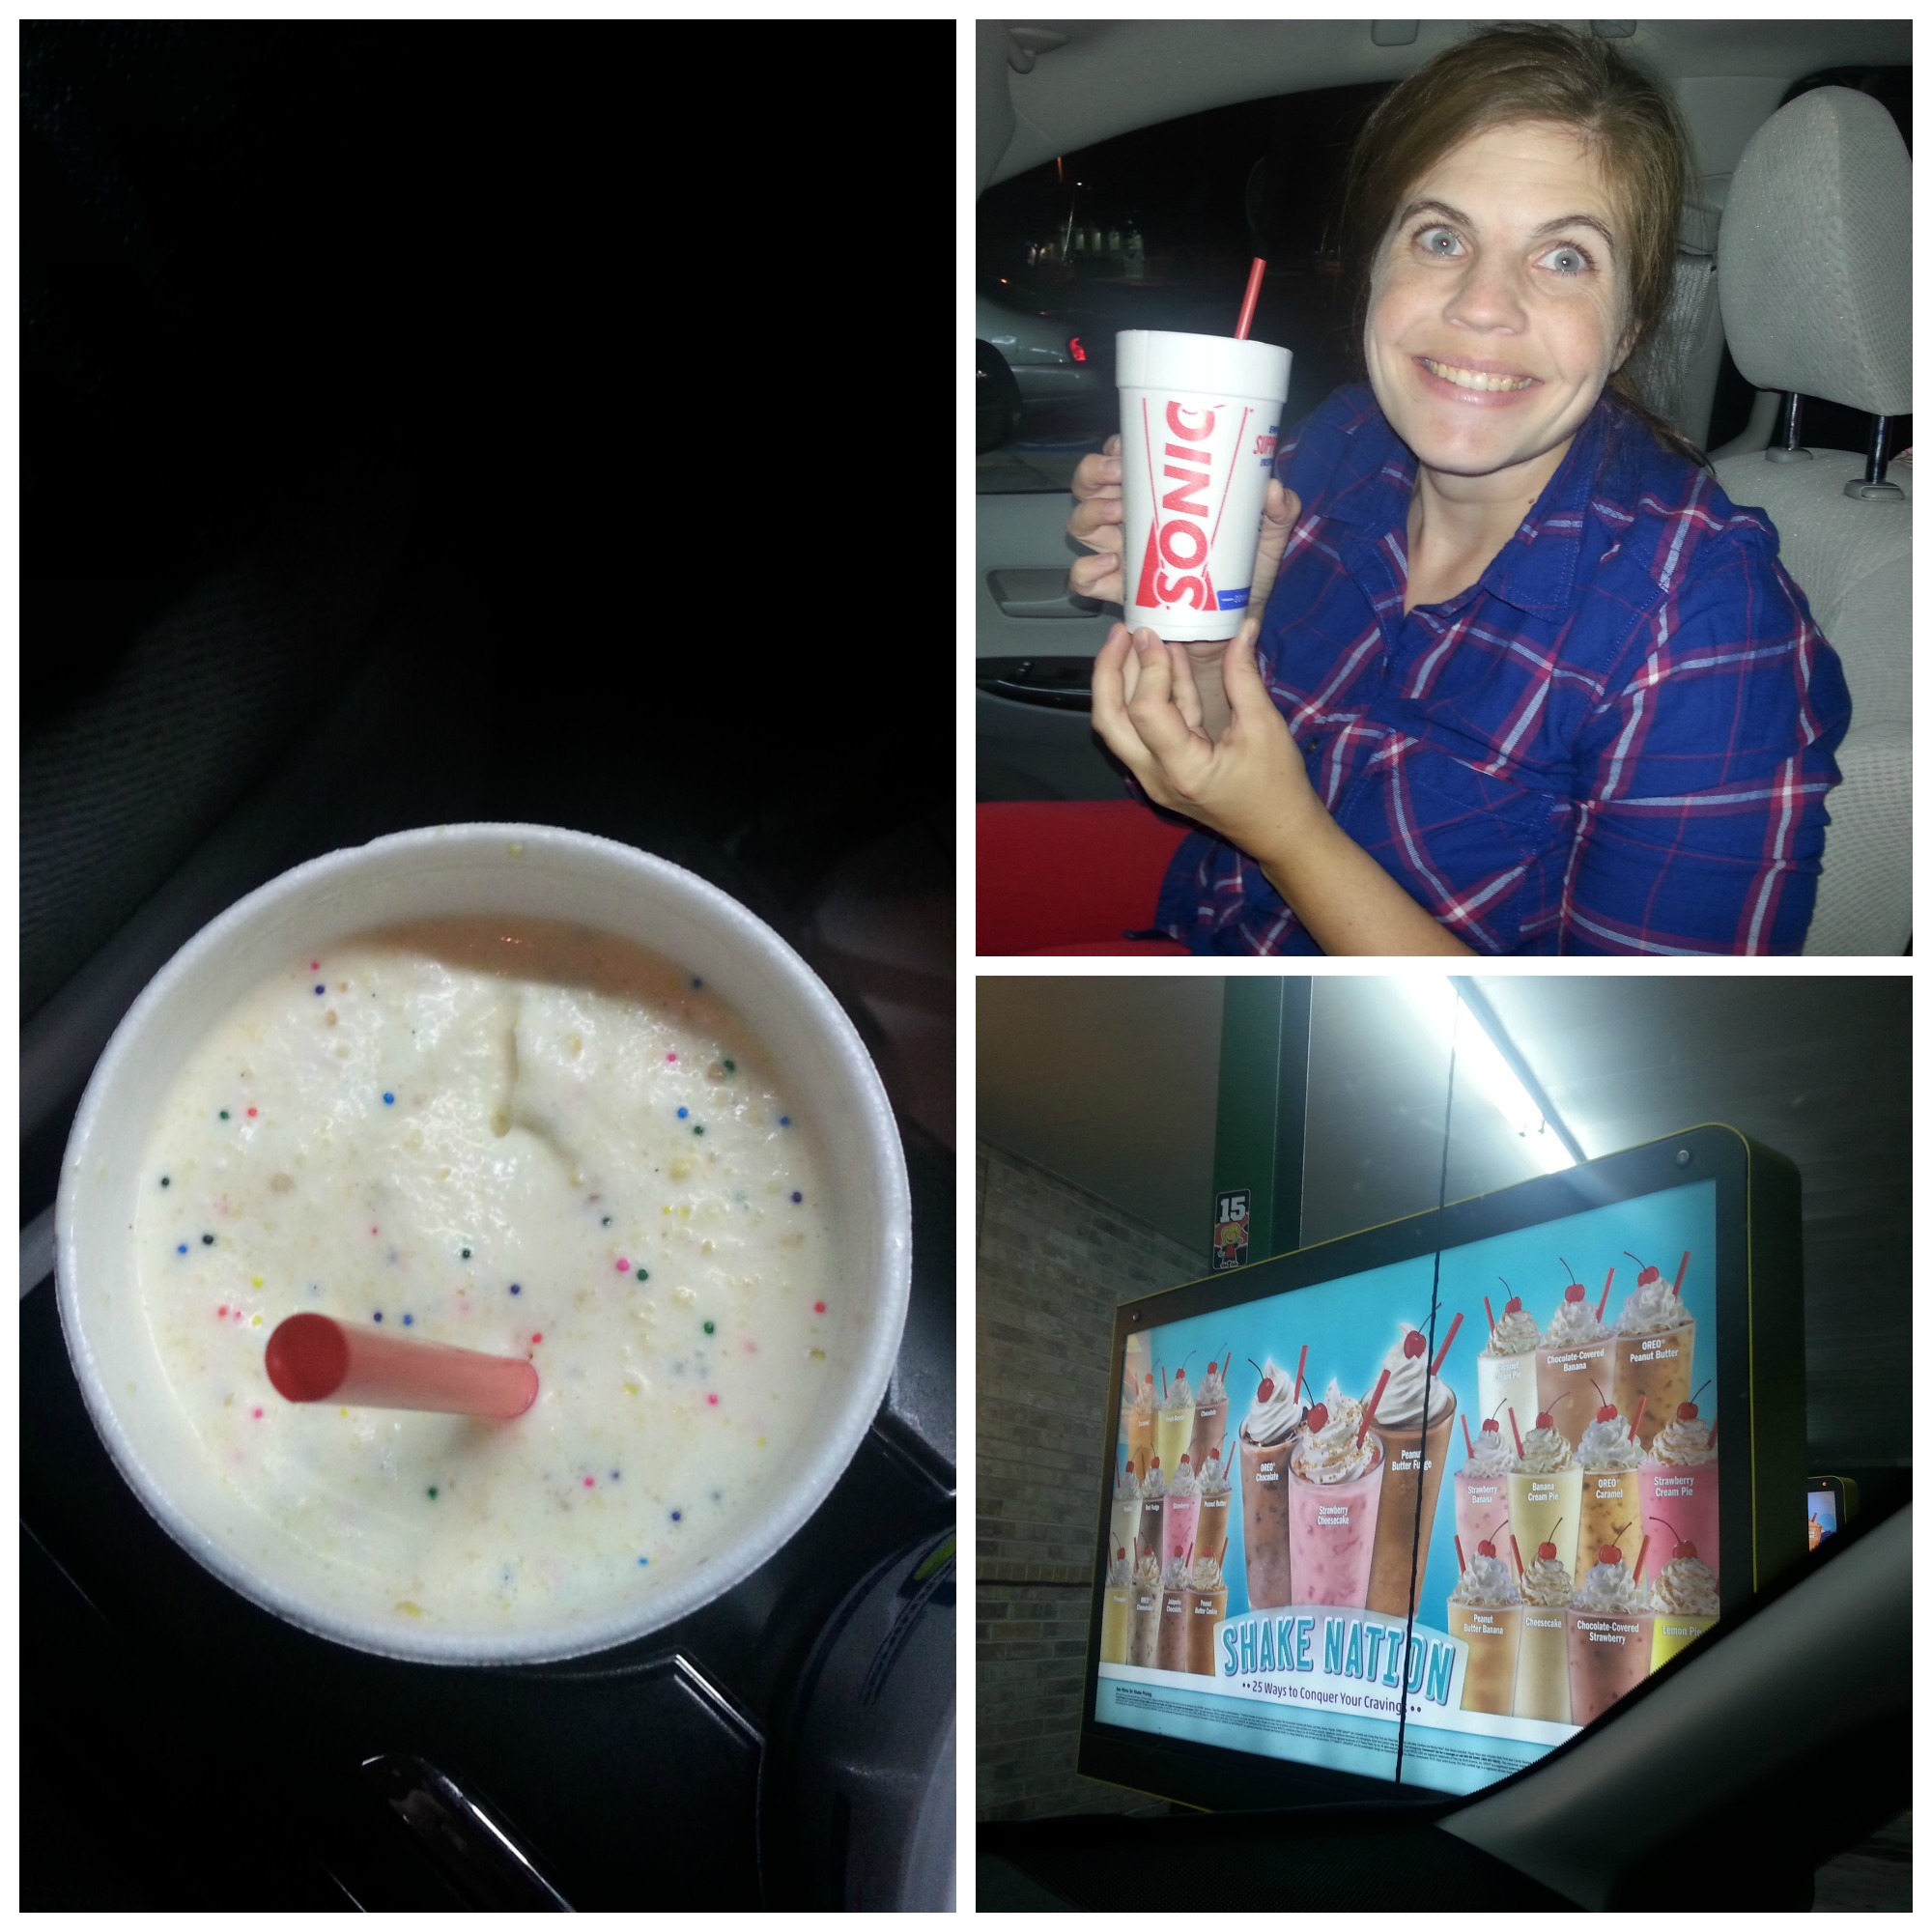 Sonic Birthday Cake Shake Celebrate Everyday With The New Sonic Cake Shakes 25 Gc Giveaway